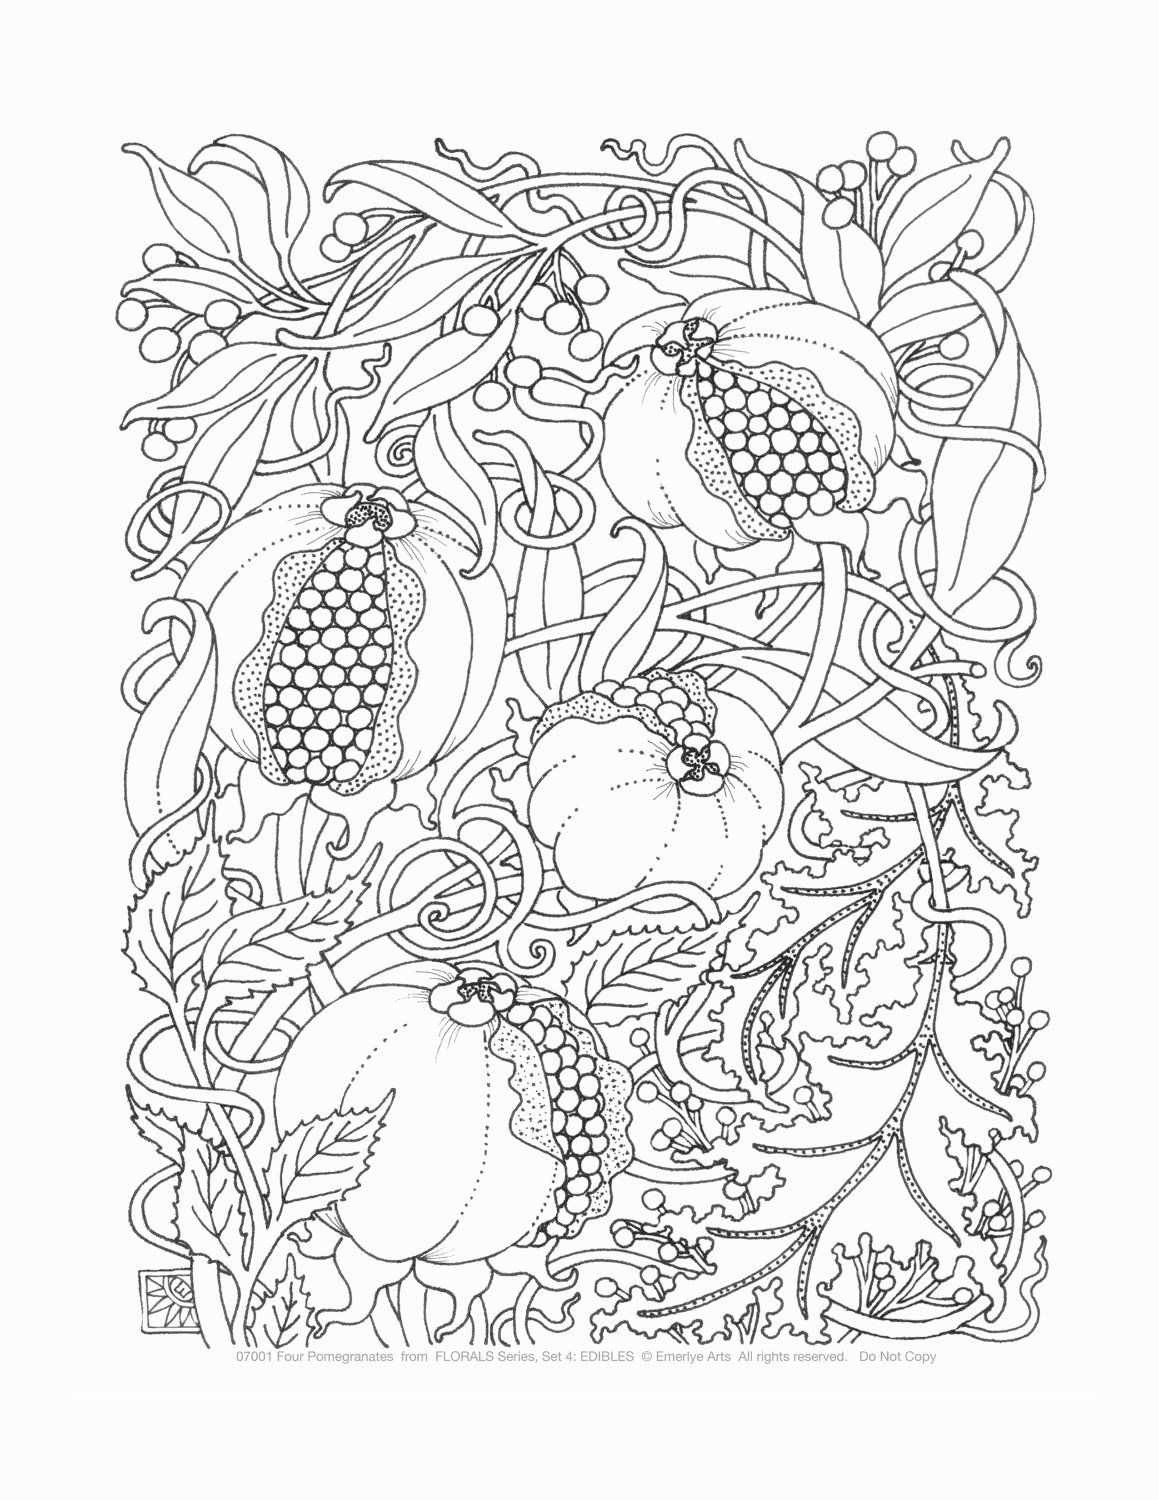 Free online coloring pages for adults - Coloring Pages For Adults Printable Coloring Pages For Adults Free Coloring Pages For Adults Online Coloring Pages For Adults For Adults Teenagers Kids